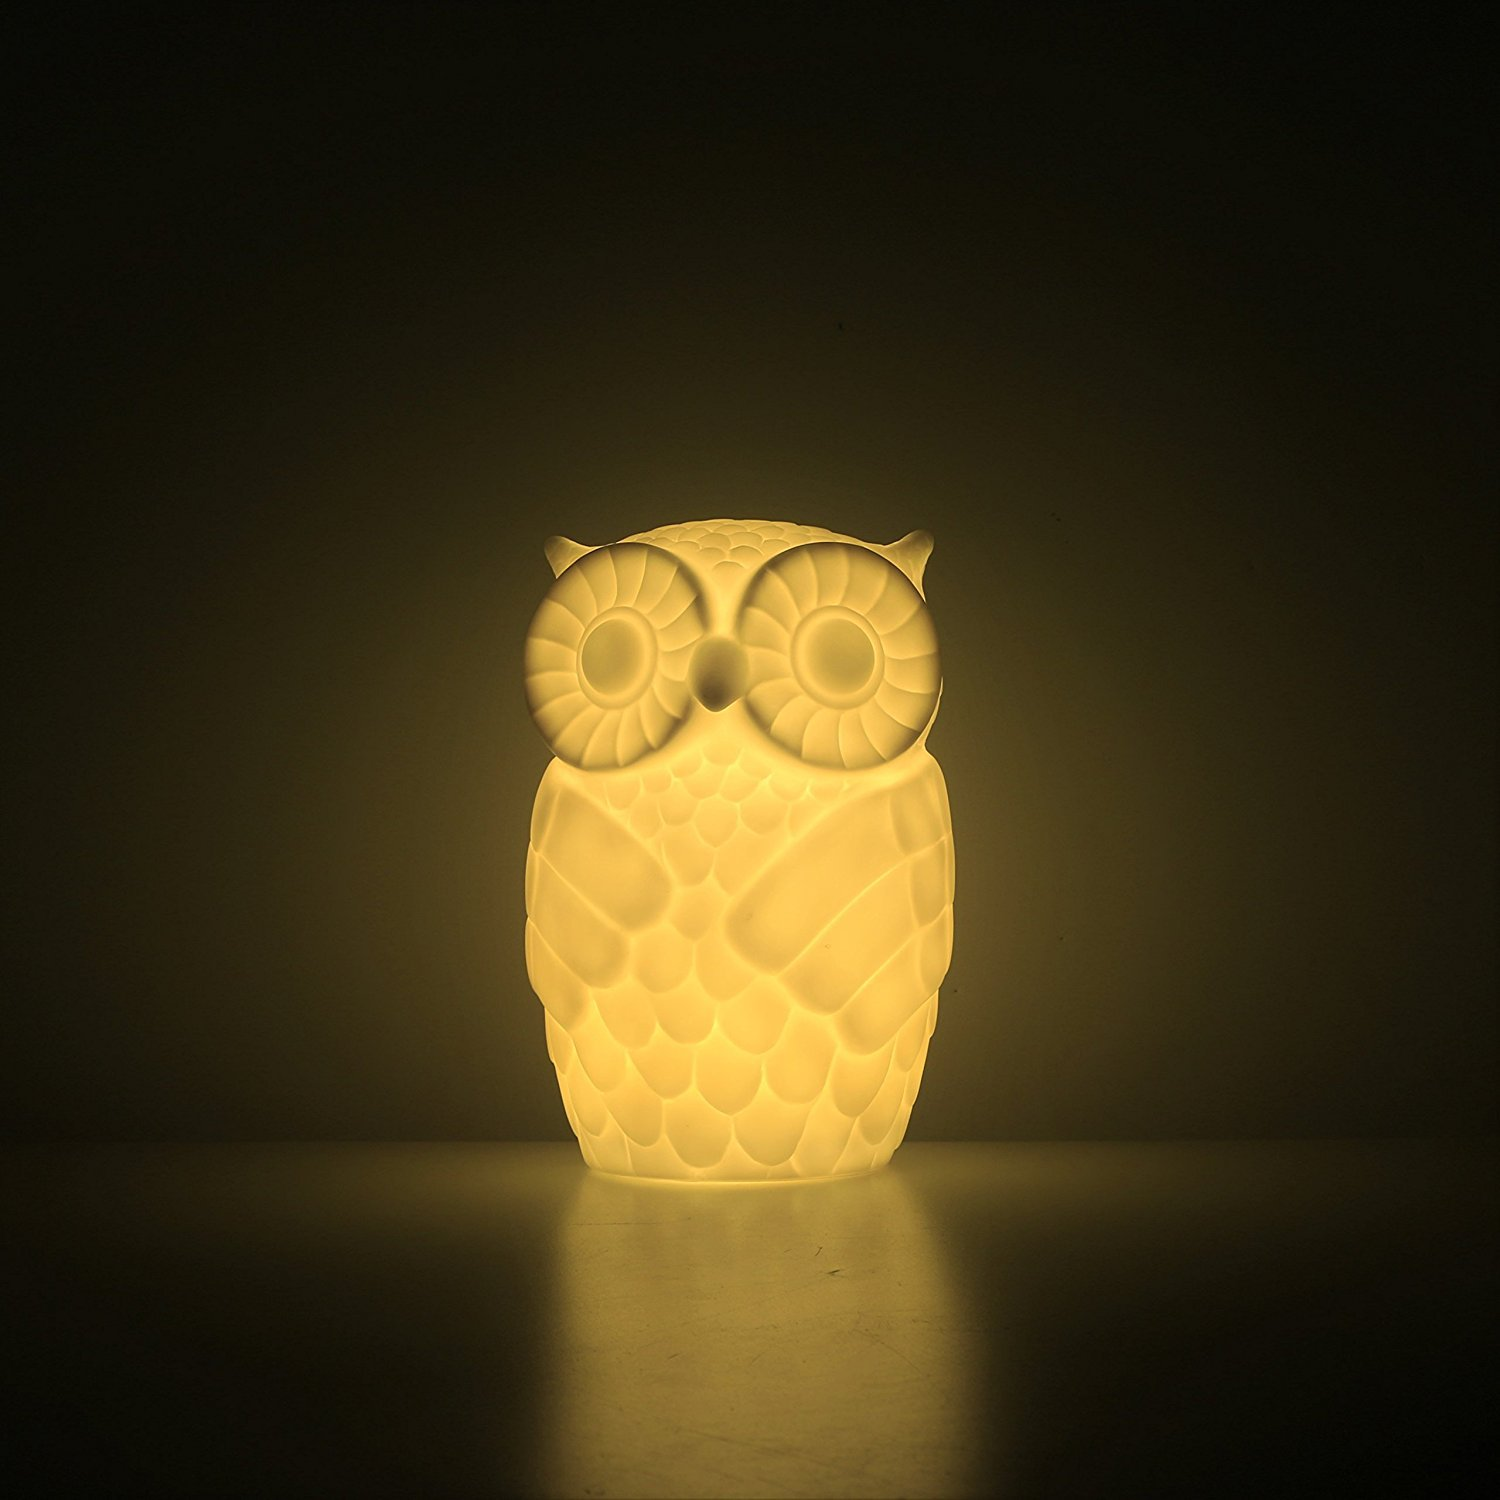 Mojocraft Serenity the Owl Battery/USB Powered Decorative Claylike Night Light with Timer, Warm White